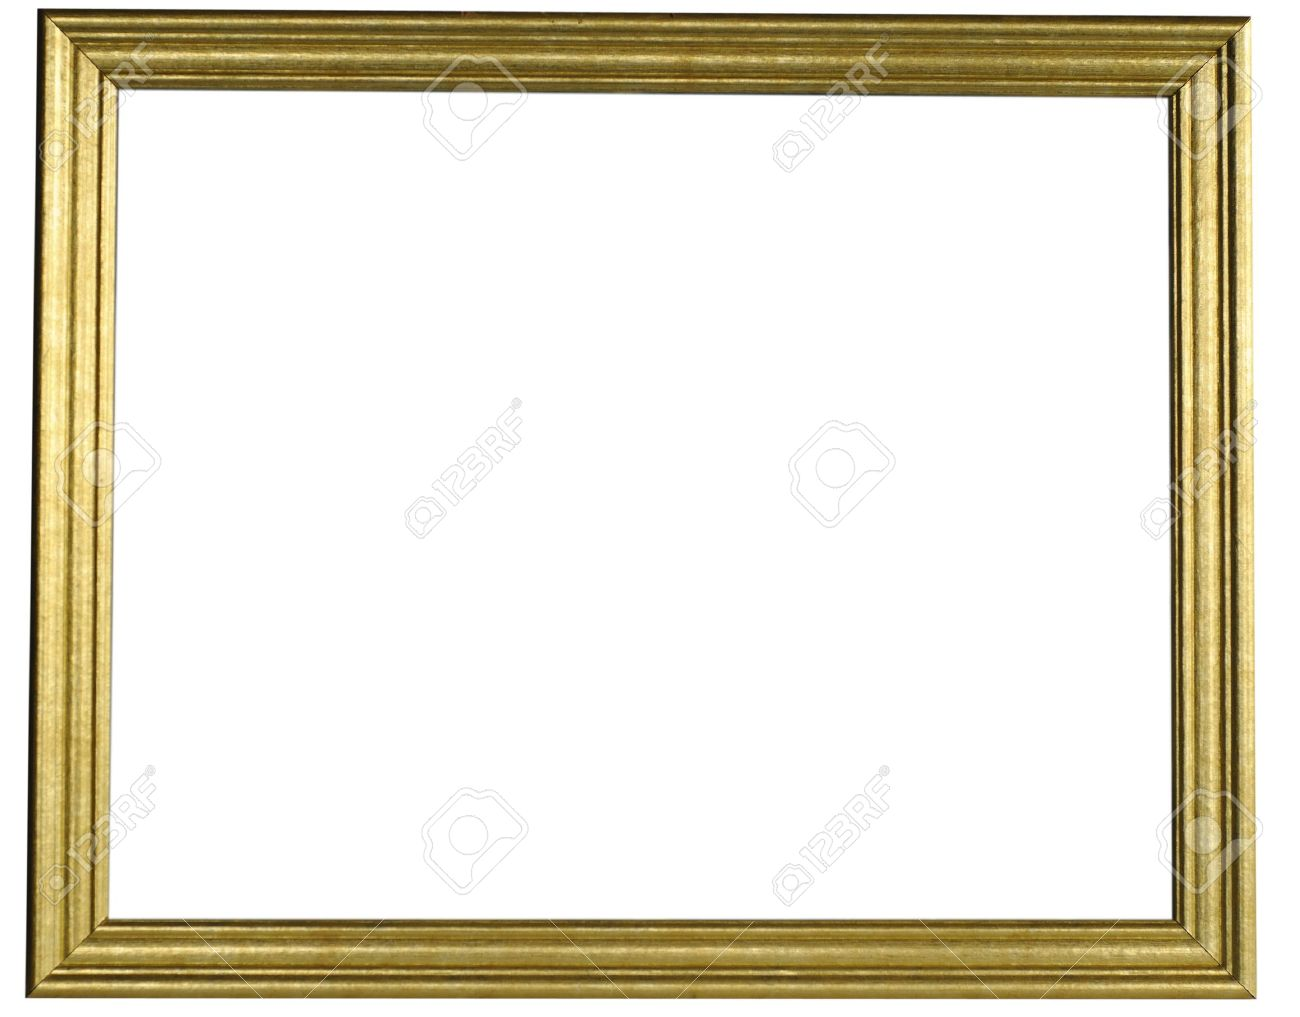 aaeb144a7166 Classic gold frame isolated on white background. Stock Photo - 7407975